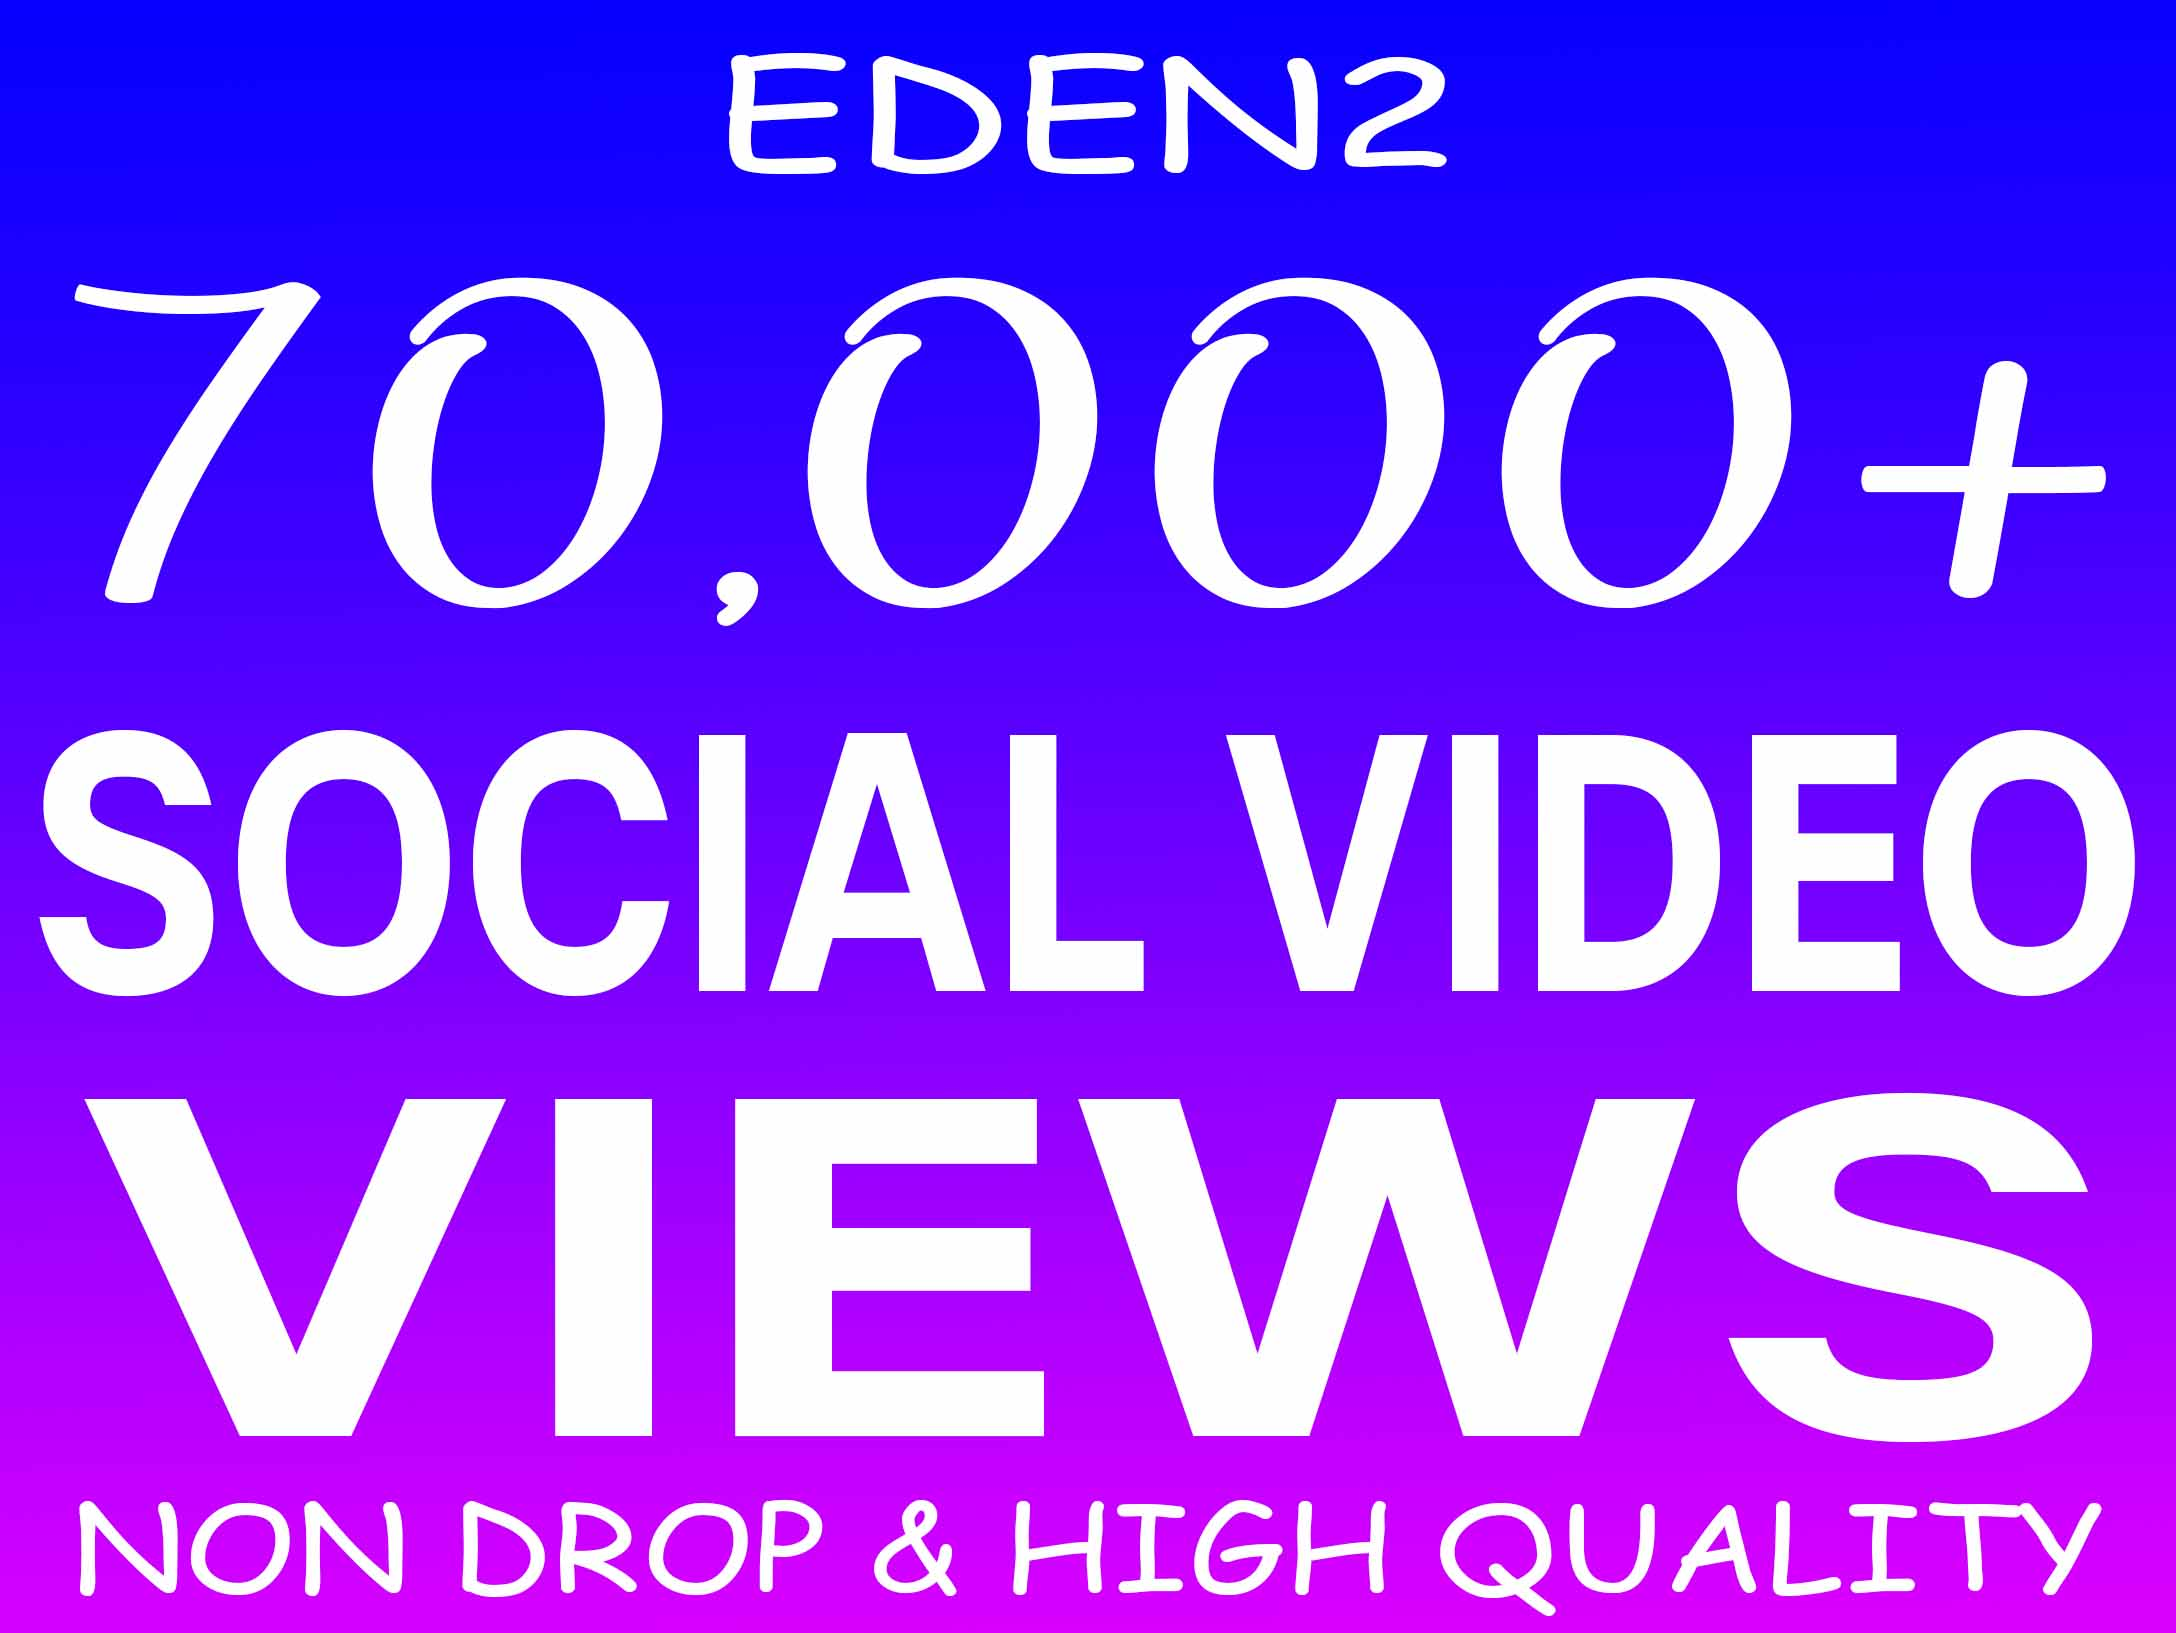 ADD 70K SOCIAL VIDEO VIEWS NON DROP AND HIGH QUALITY PROMOTION WITH INSTANT START